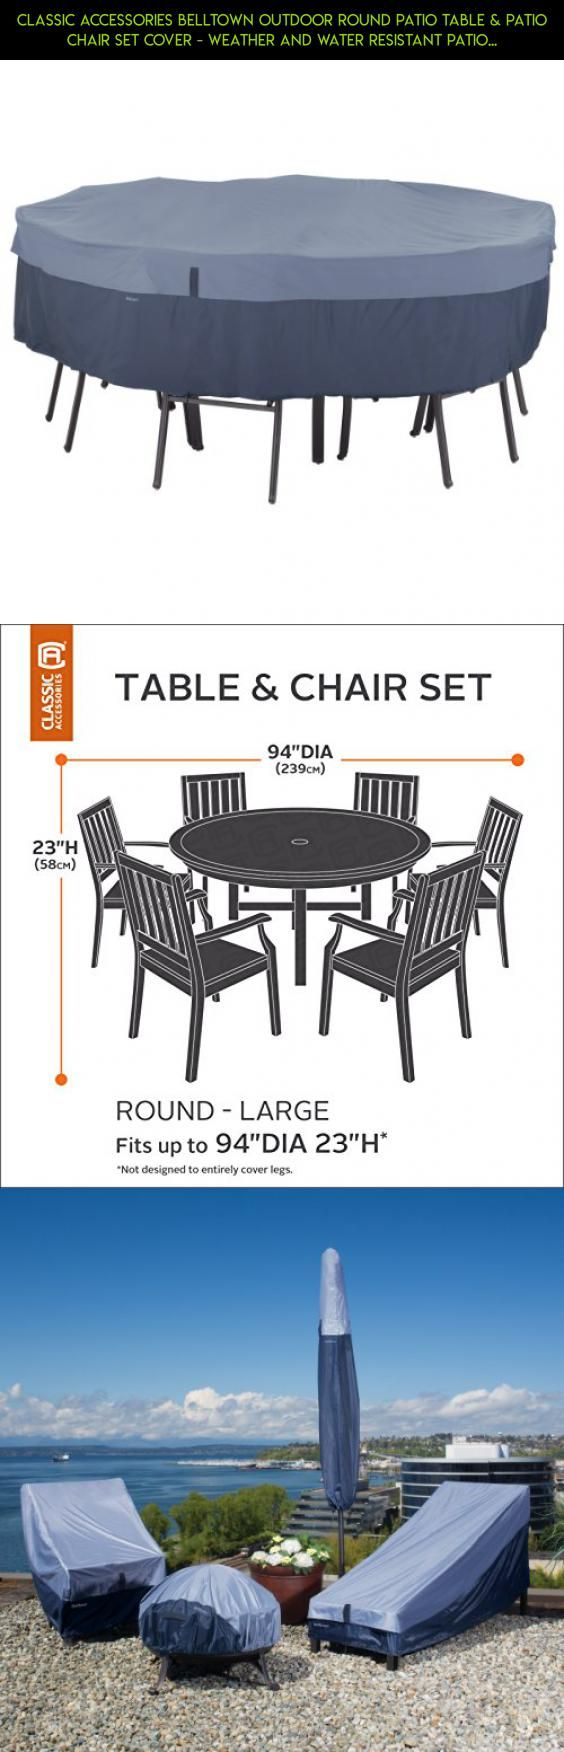 Classic Accessories Belltown Outdoor Round Patio Table & Patio Chair Set Cover - Weather and Water Resistant Patio Set Cover, Blue, Large (55-276-015501-00) #fpv #technology #camera #patio #racing #plans #shopping #tarp #drone #parts #kit #tech #furniture #products #gadgets